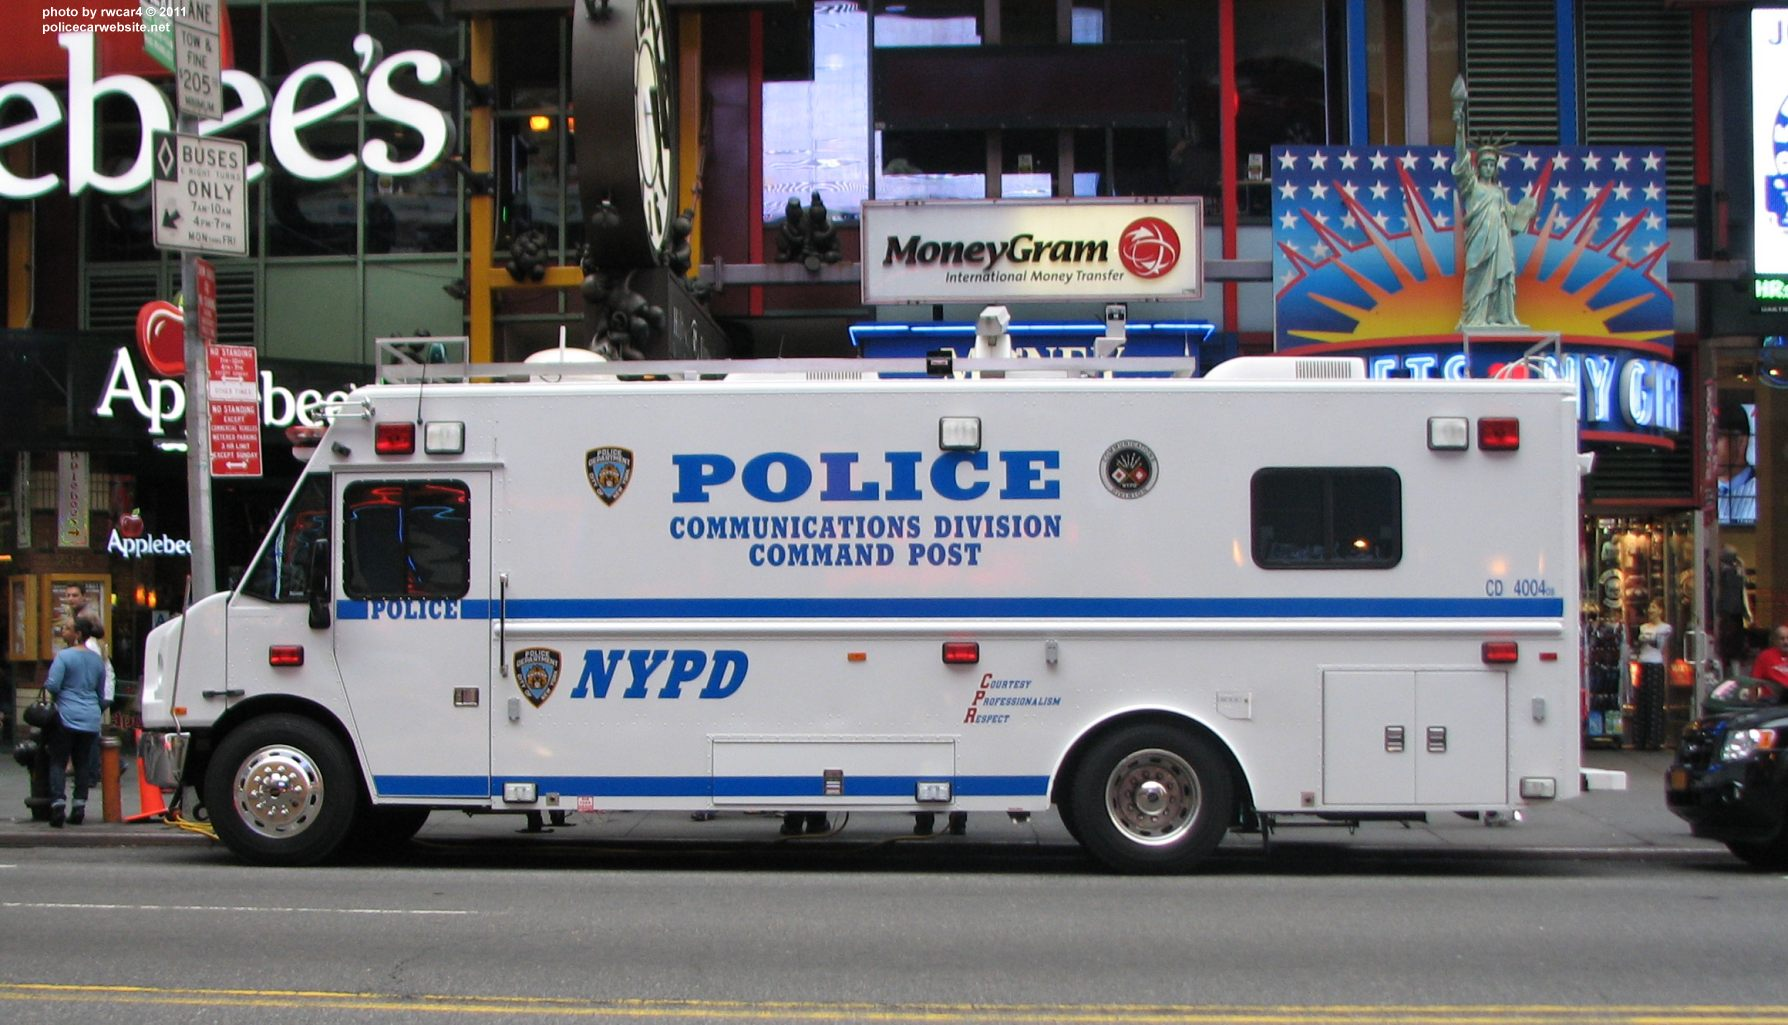 NYPD to Spend $1.3M on Ballistic Protection for Vehicles